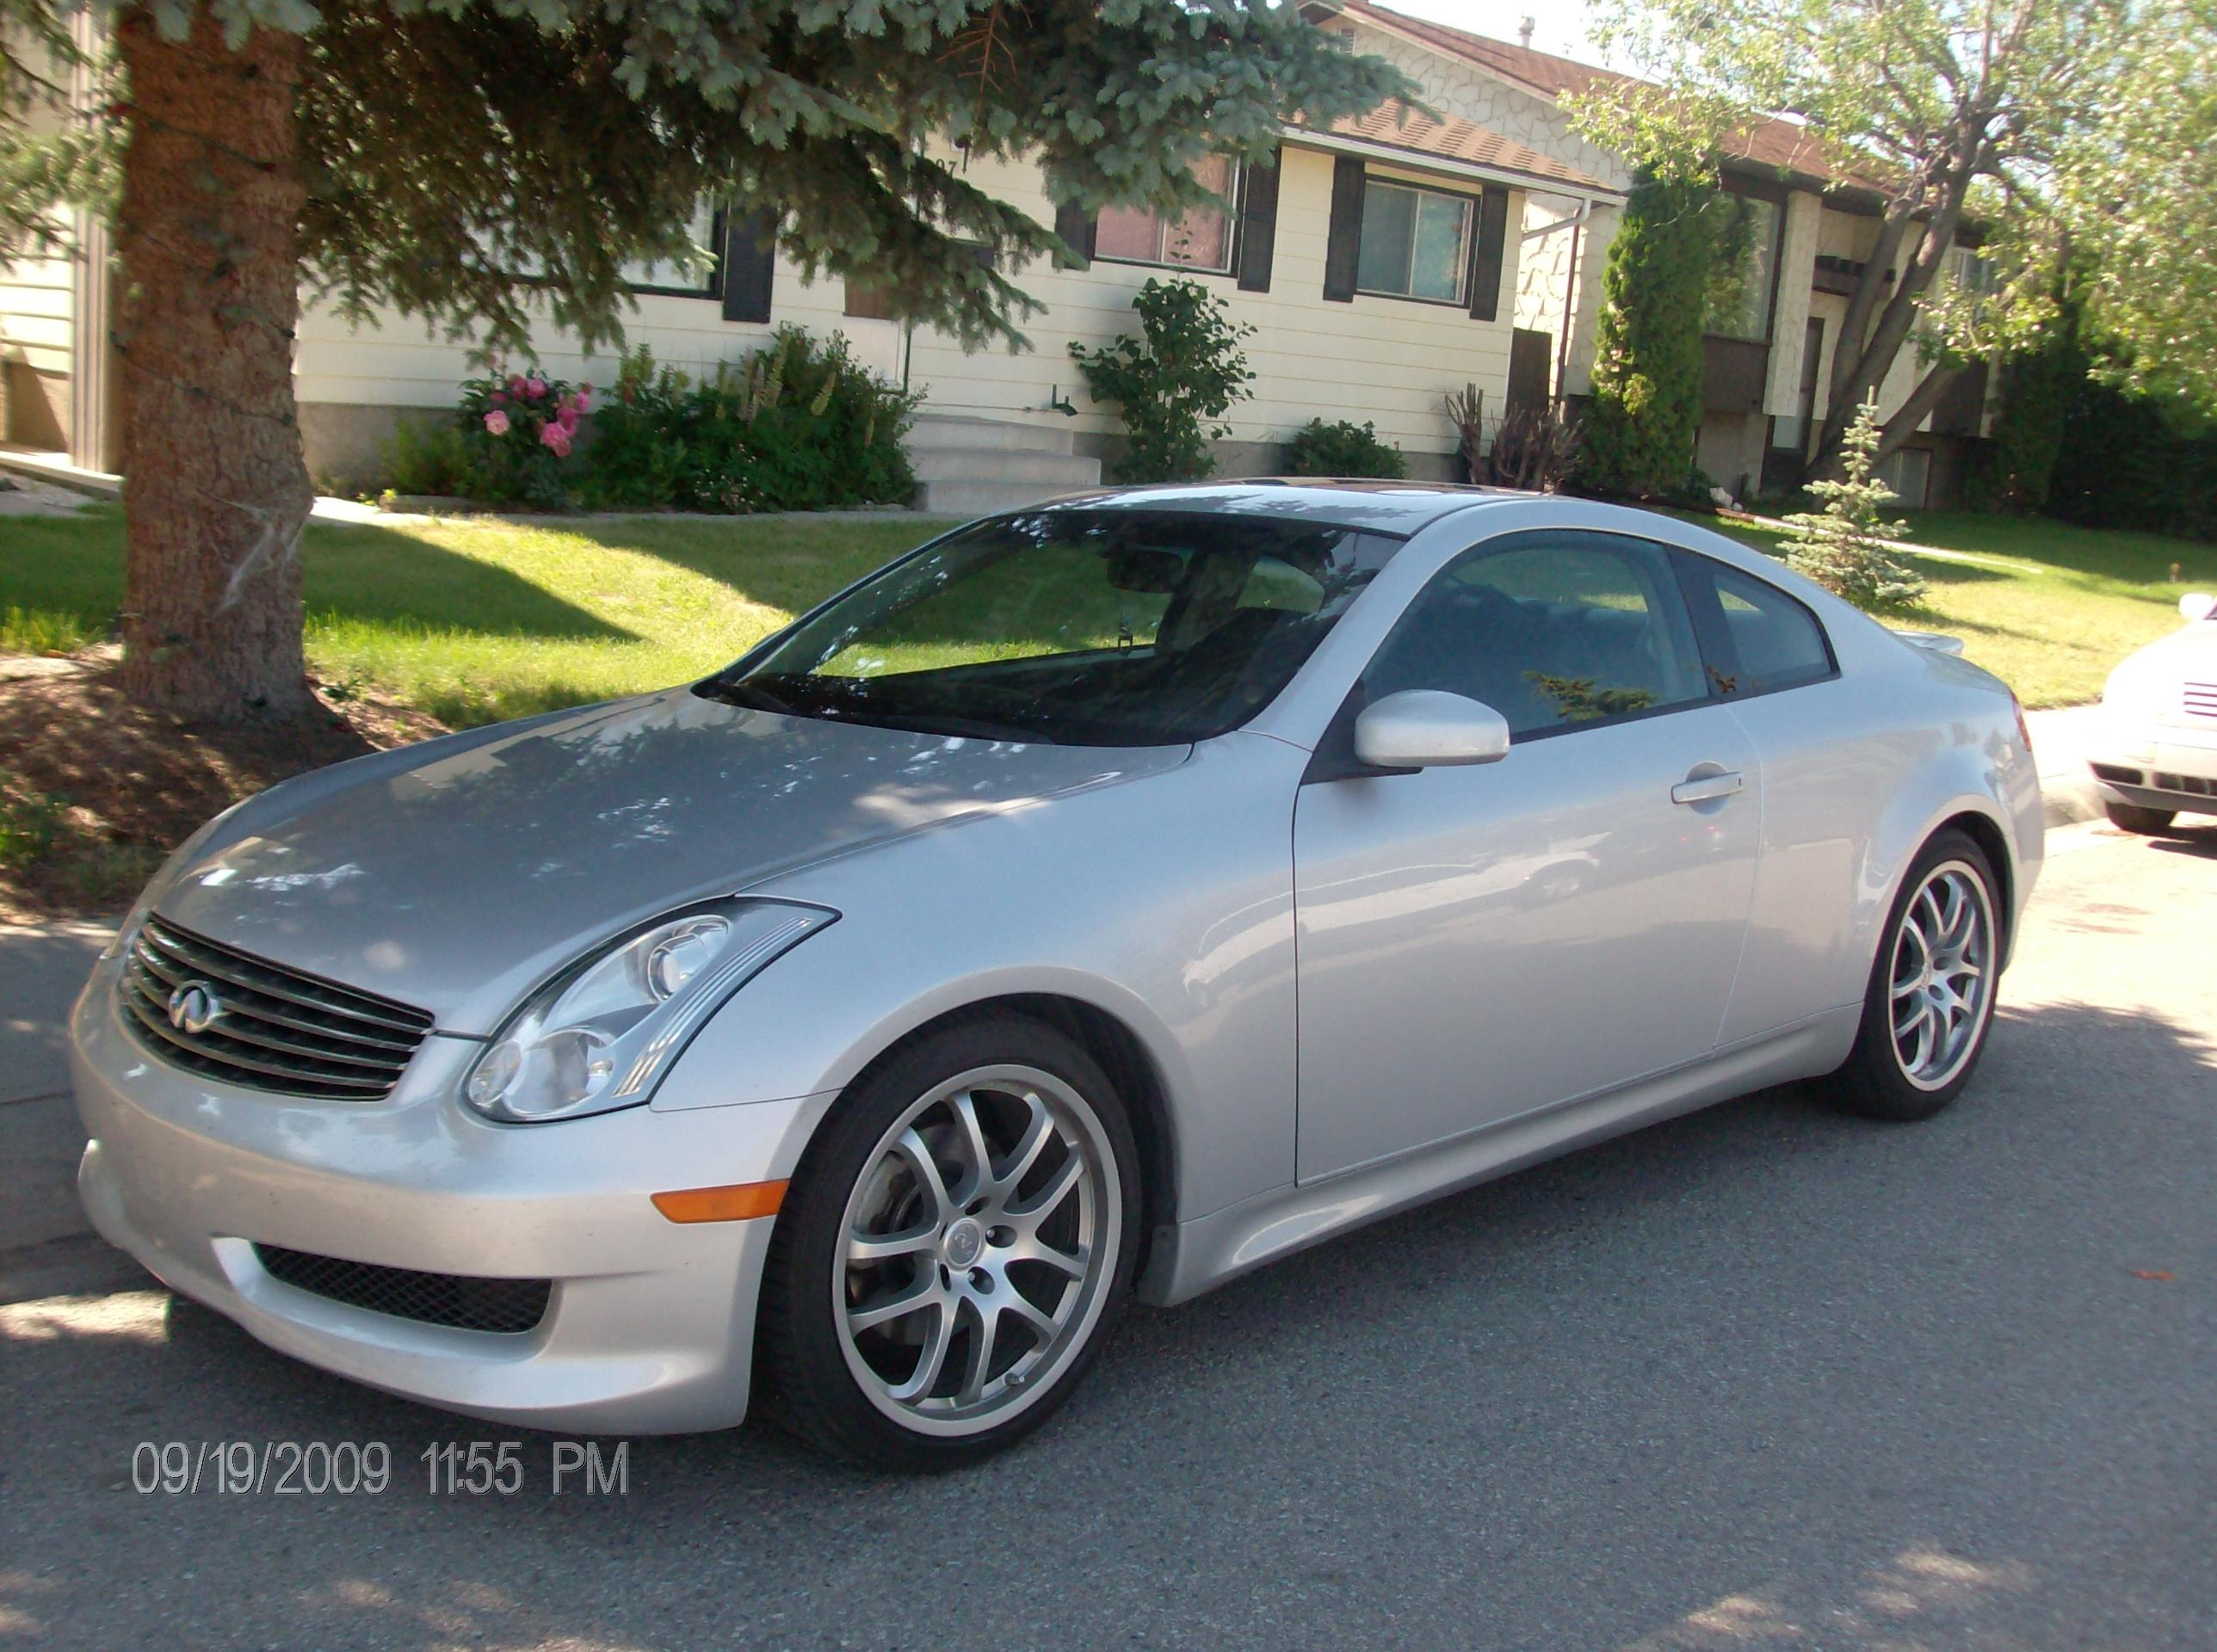 g silver 2006 infiniti gg35 coupe 2d specs photos modification info at cardomain. Black Bedroom Furniture Sets. Home Design Ideas